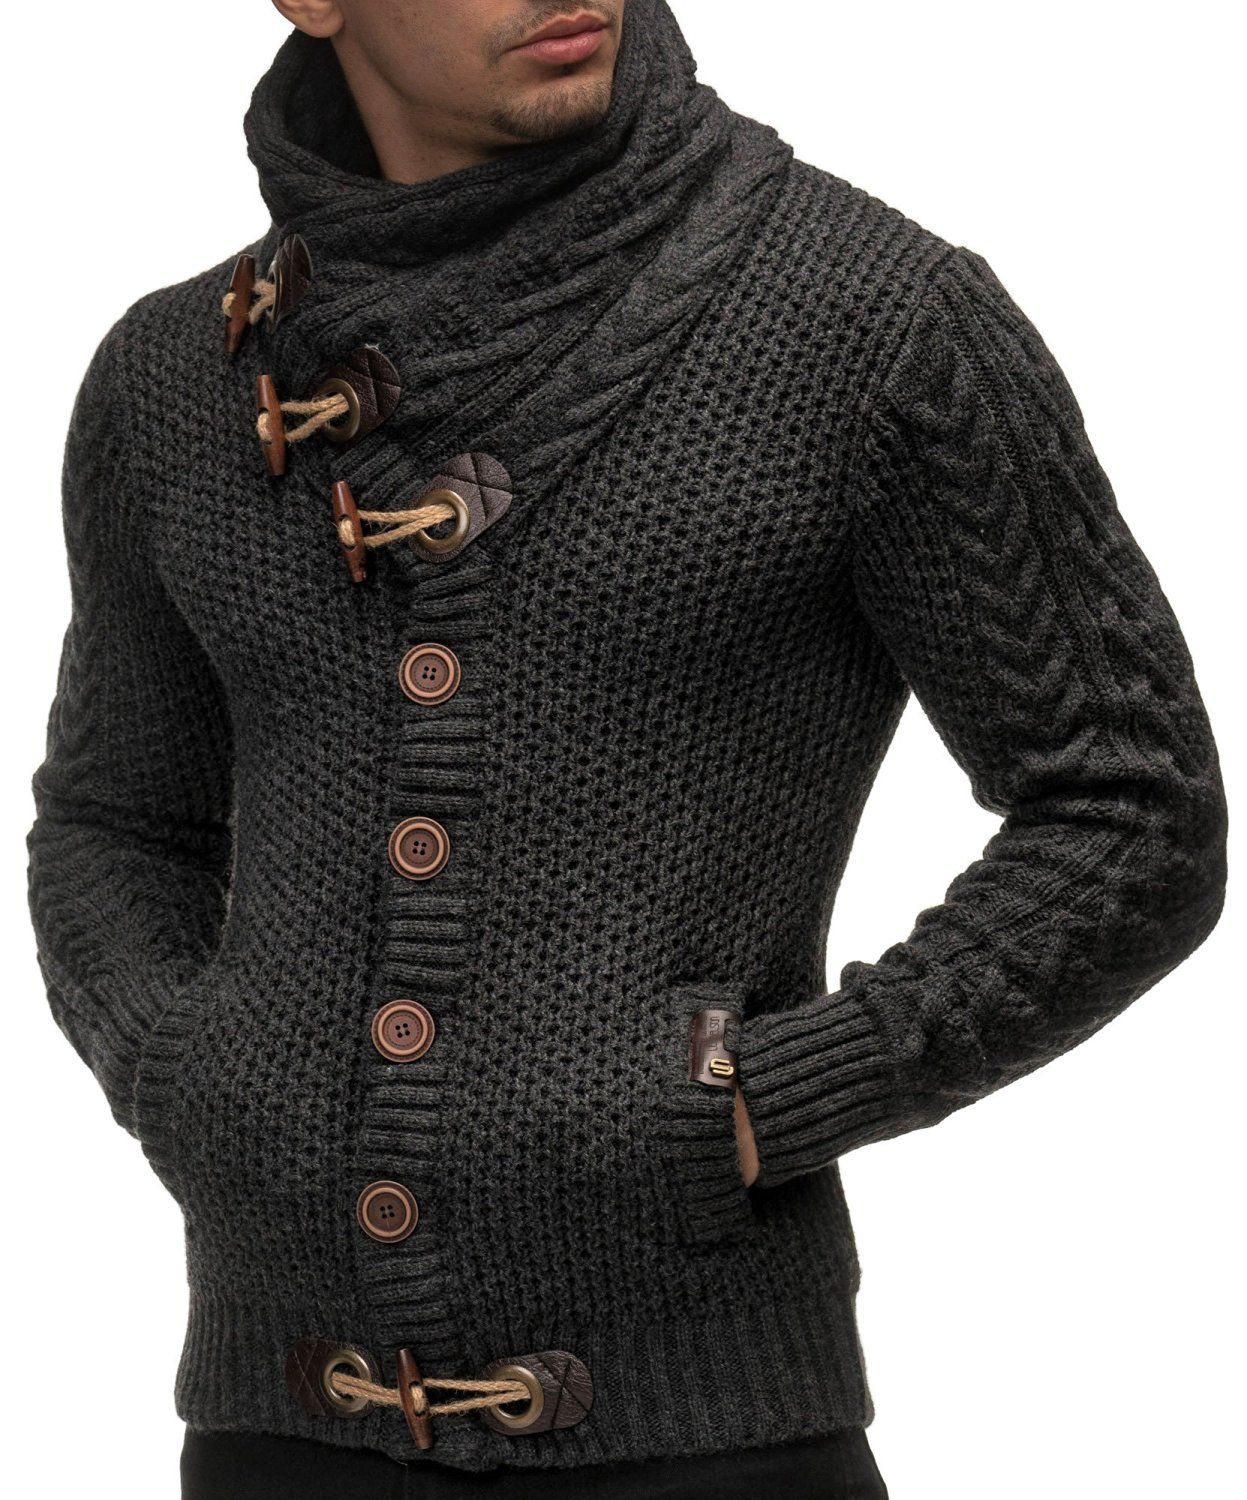 LEIF NELSON Men's Knitted Jacket Cardigan X-Large Anthracite | Más ...